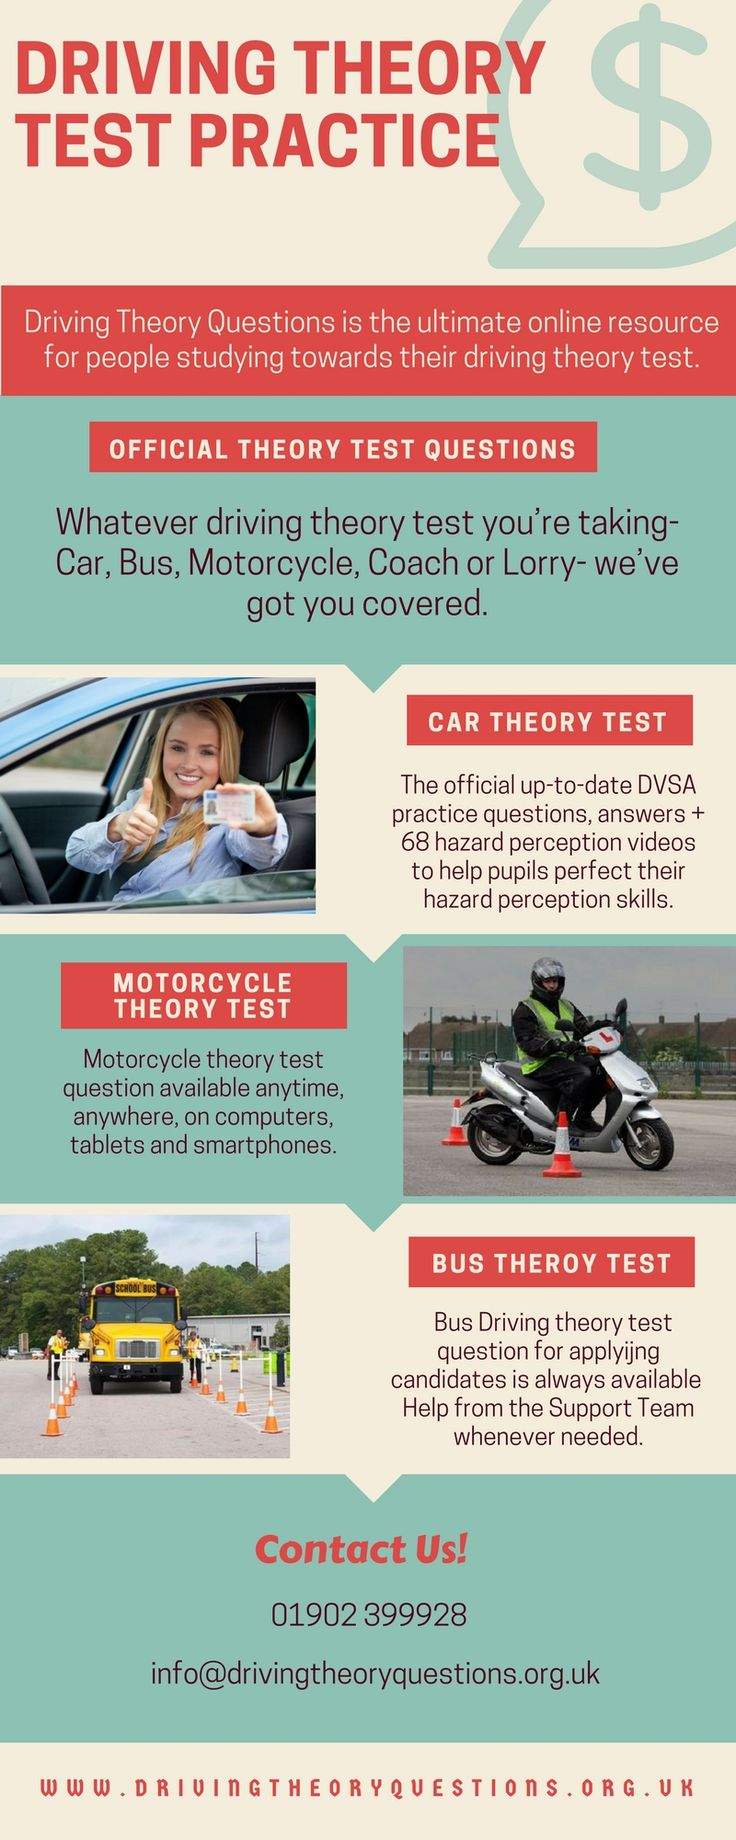 A well established #driving #theory #centre generally provides candidate different types of driving tests tutorils so that one could familirize with the format. Driving Theory #Questions has updated theory #questions for the best results. Visit us now!